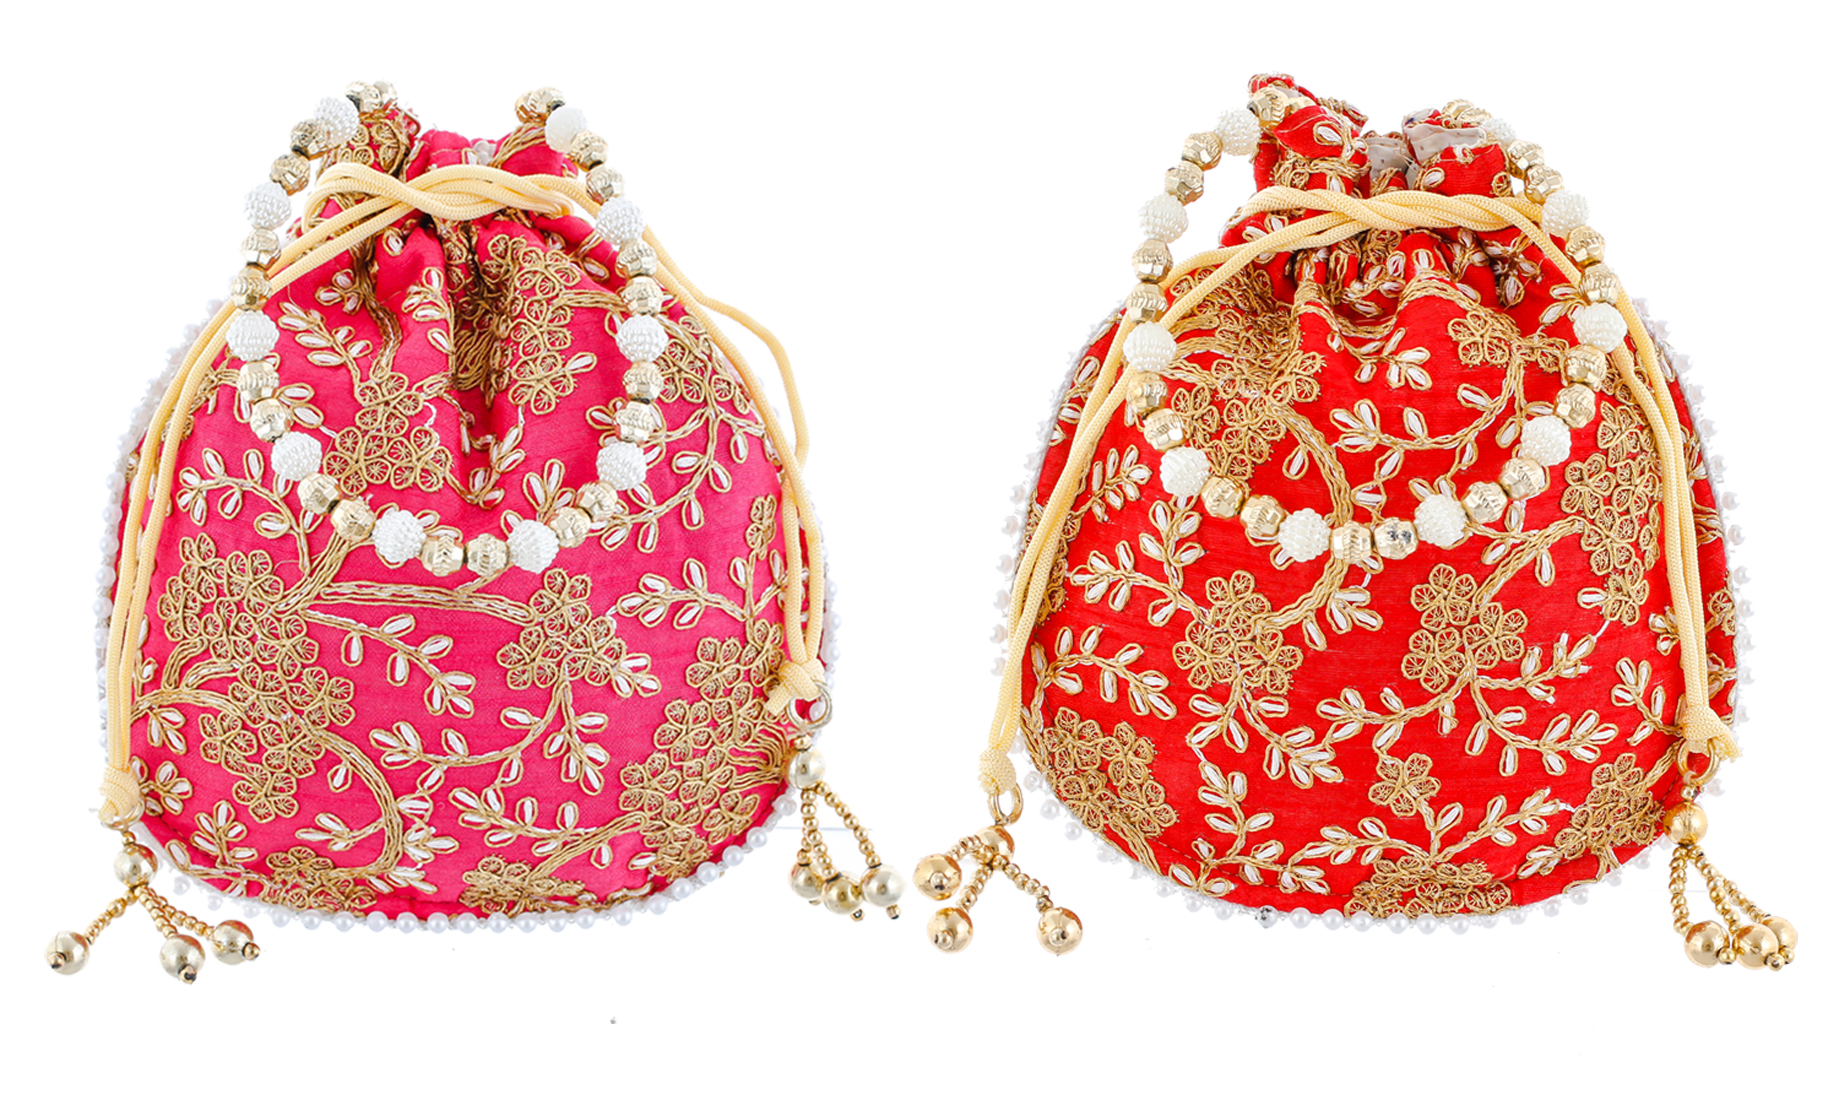 Kuber Industries Ethnic Clutch Silk 2 Pieces Potli Batwa Pouch Bag with Beadwork Gift For Women (Red & Pink) - CTKTC23045